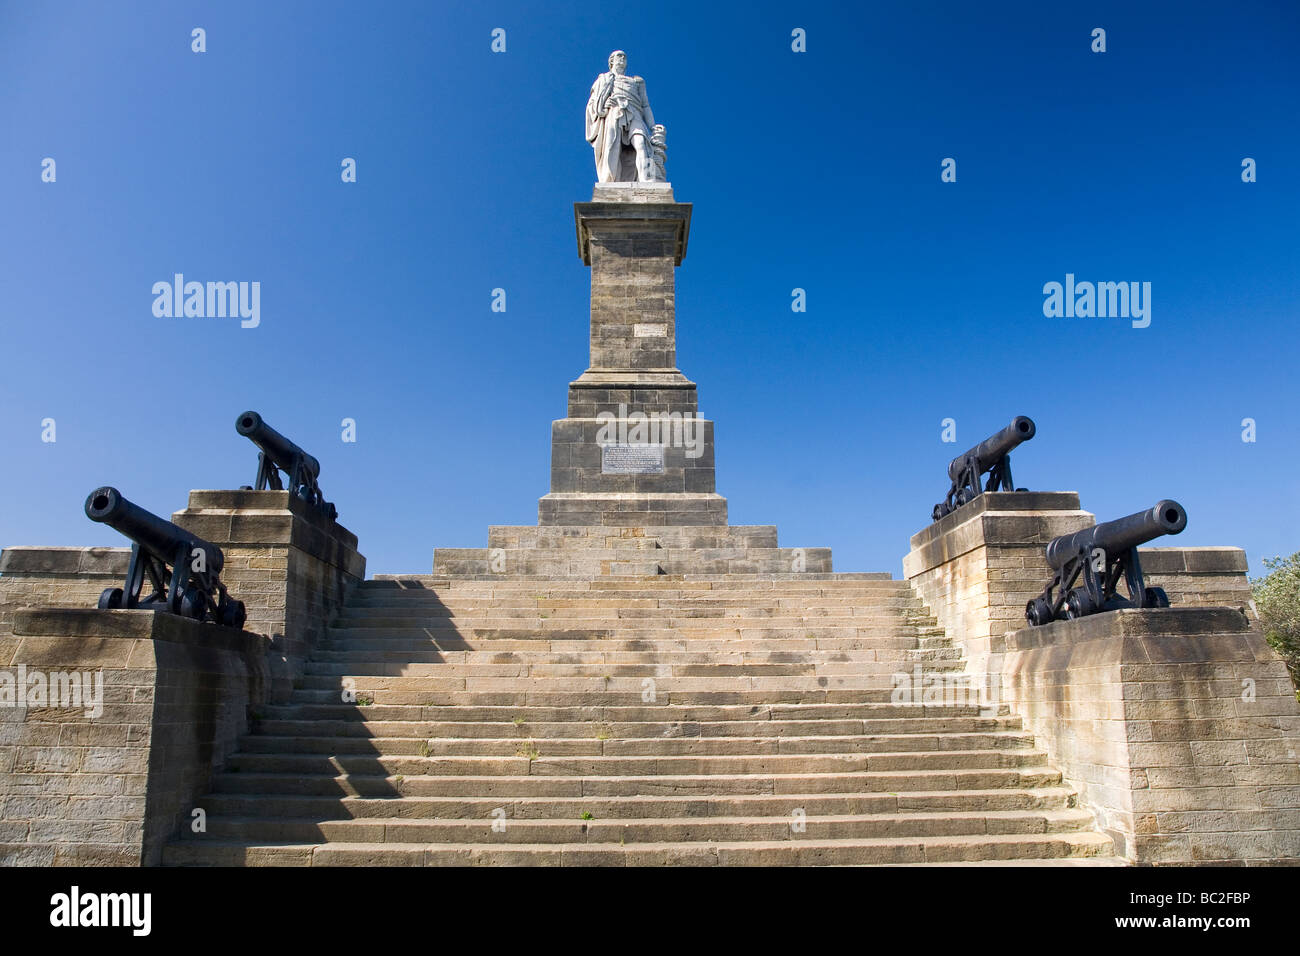 The memorial to Admiral Lord Collingwood, one of the heroes of the Battle of Trafalgar in October 1805. Stock Photo